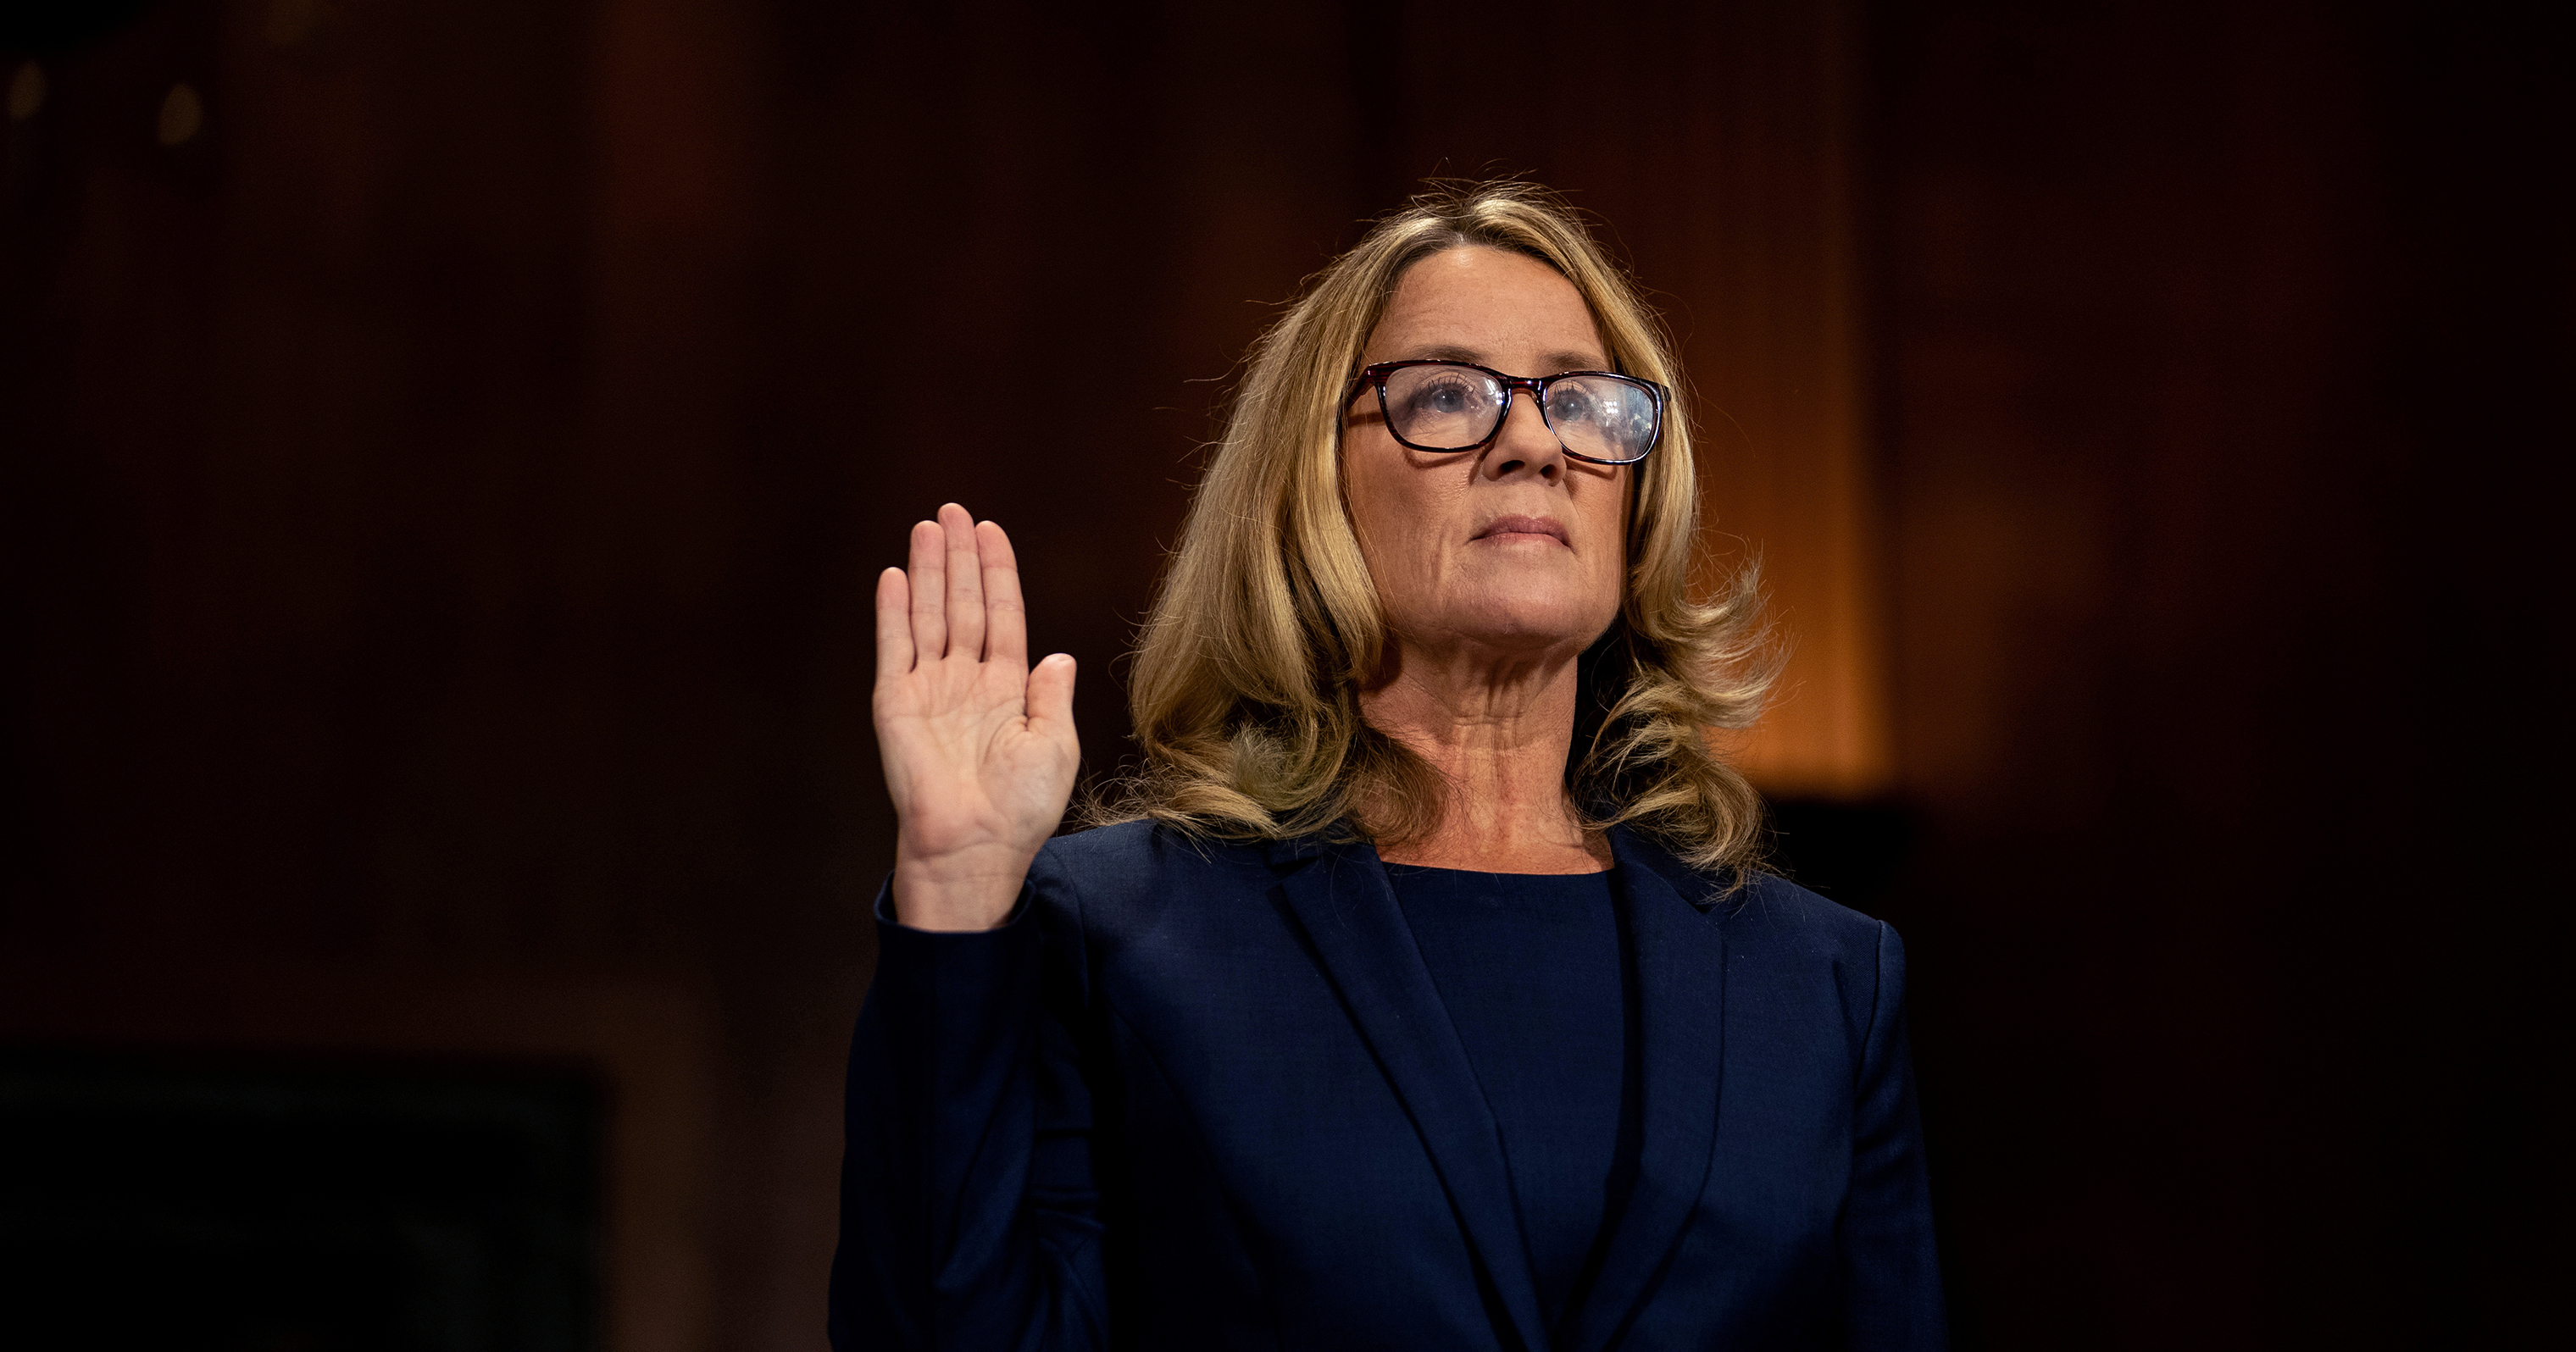 Christine Blasey Ford swears in at a Senate Judiciary Committee hearing for her to testify about sexual assault allegations against Supreme Court nominee Judge Brett Kavanaugh on Capitol Hill in Washington on Sept. 27.